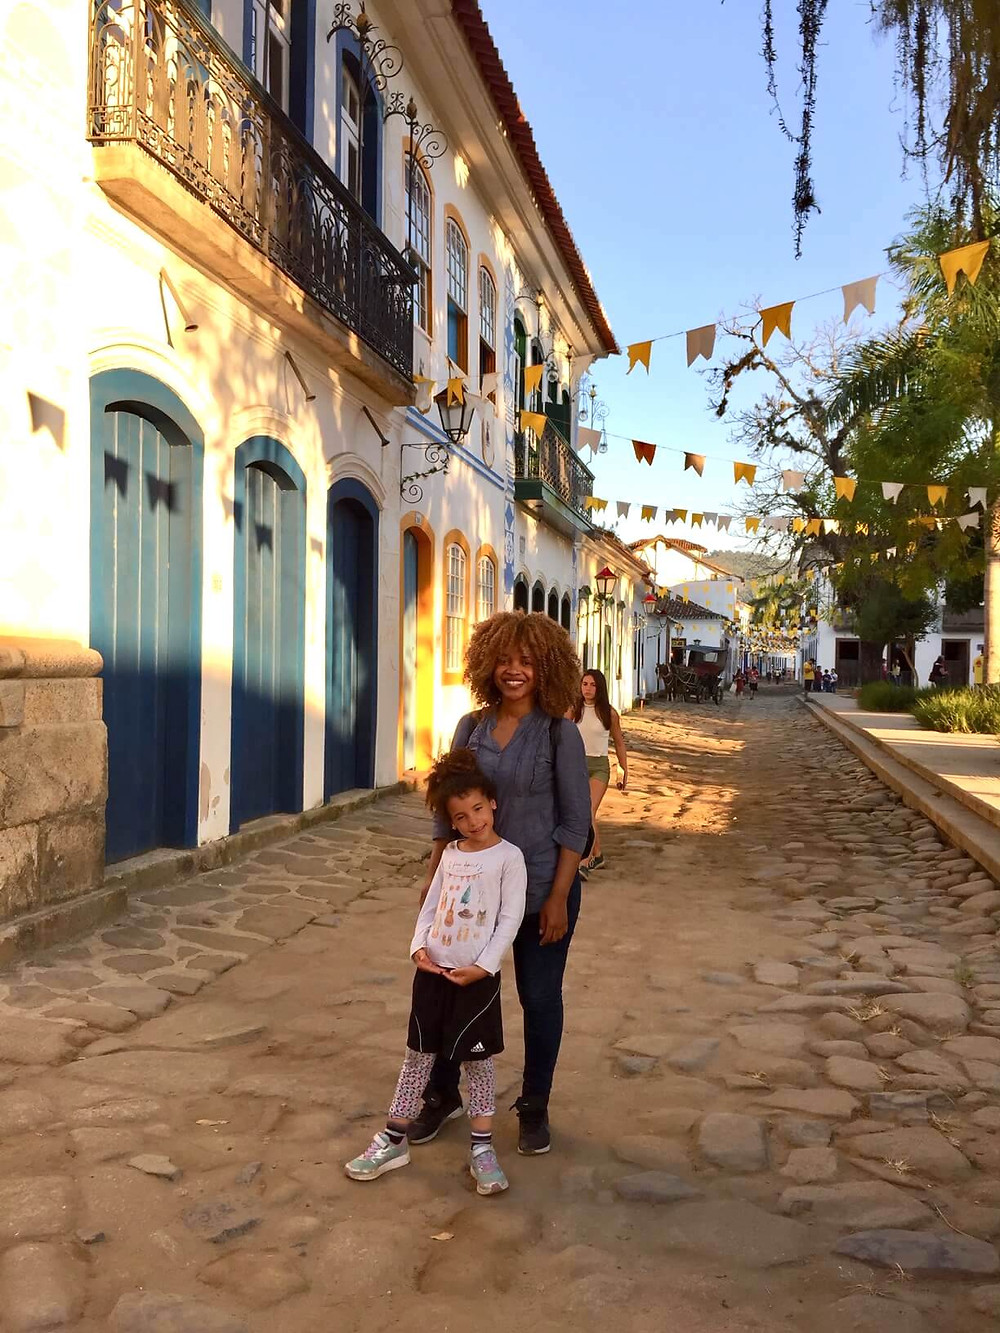 Mum and I in Paraty old city town. It is a UNESCO heritage site